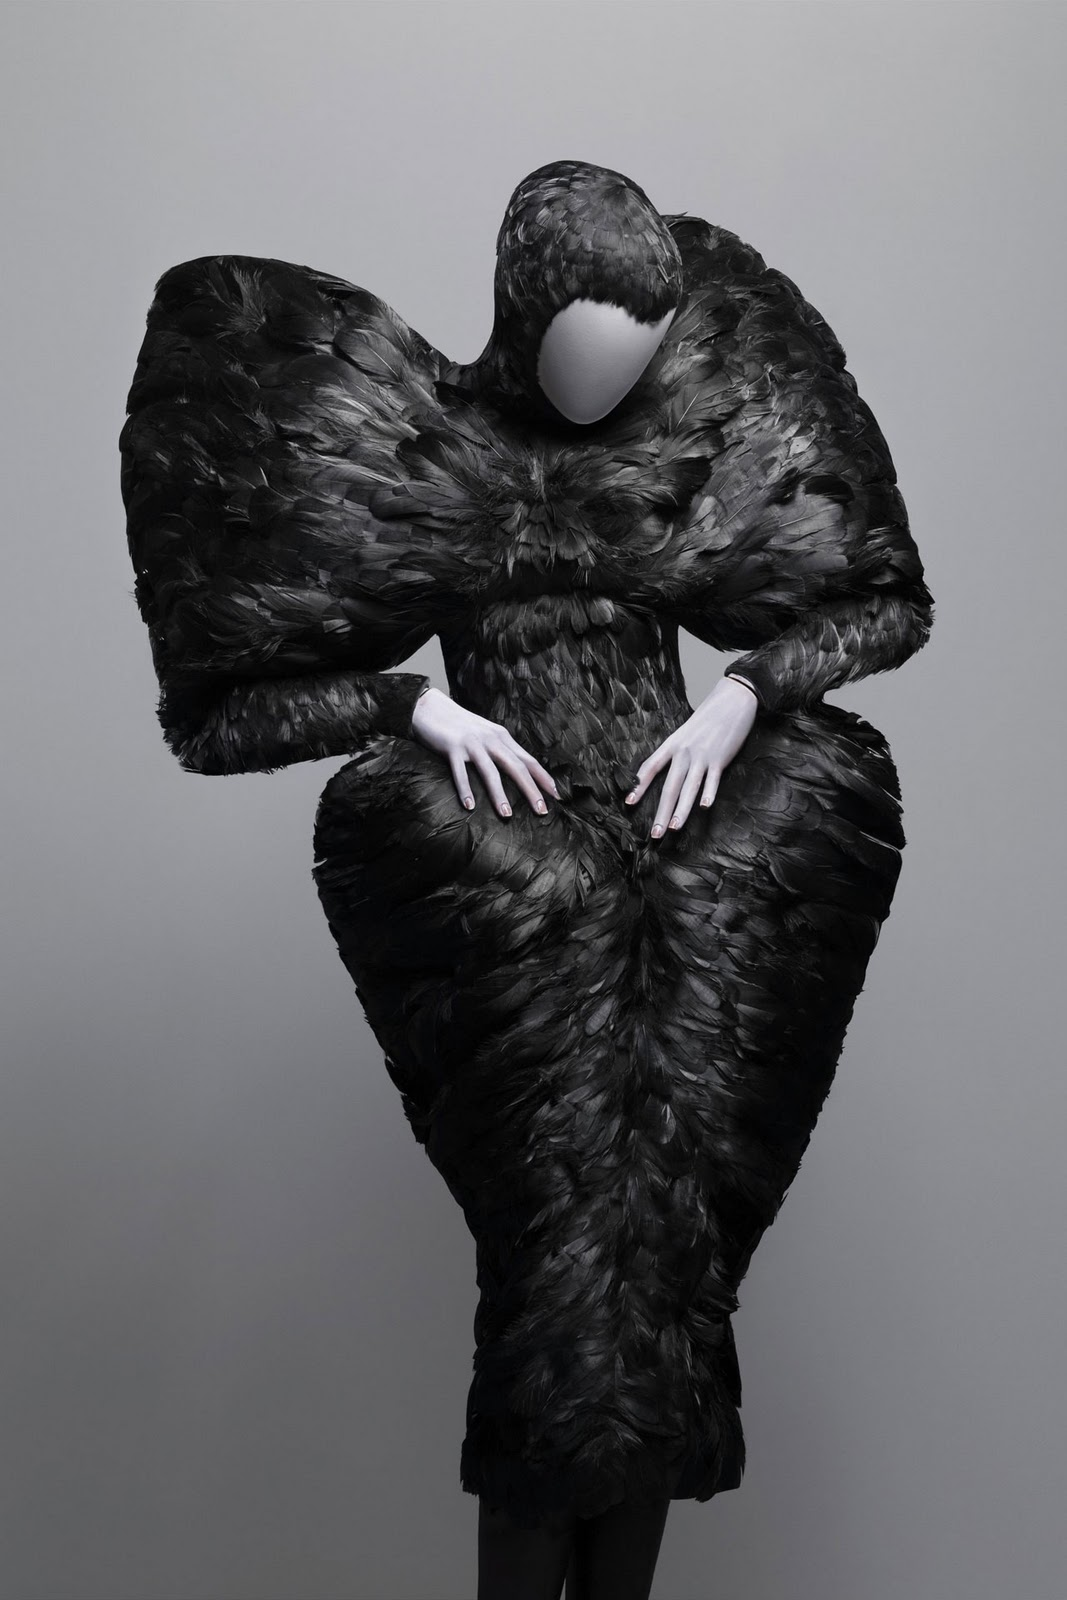 http://3.bp.blogspot.com/-w6rQXnosqmk/TdHuwqdzu4I/AAAAAAAAADQ/B9MZBp45P4U/s1600/Alexander_Mc_Queen9_black_feathers_dress_savagebeauty.jpg